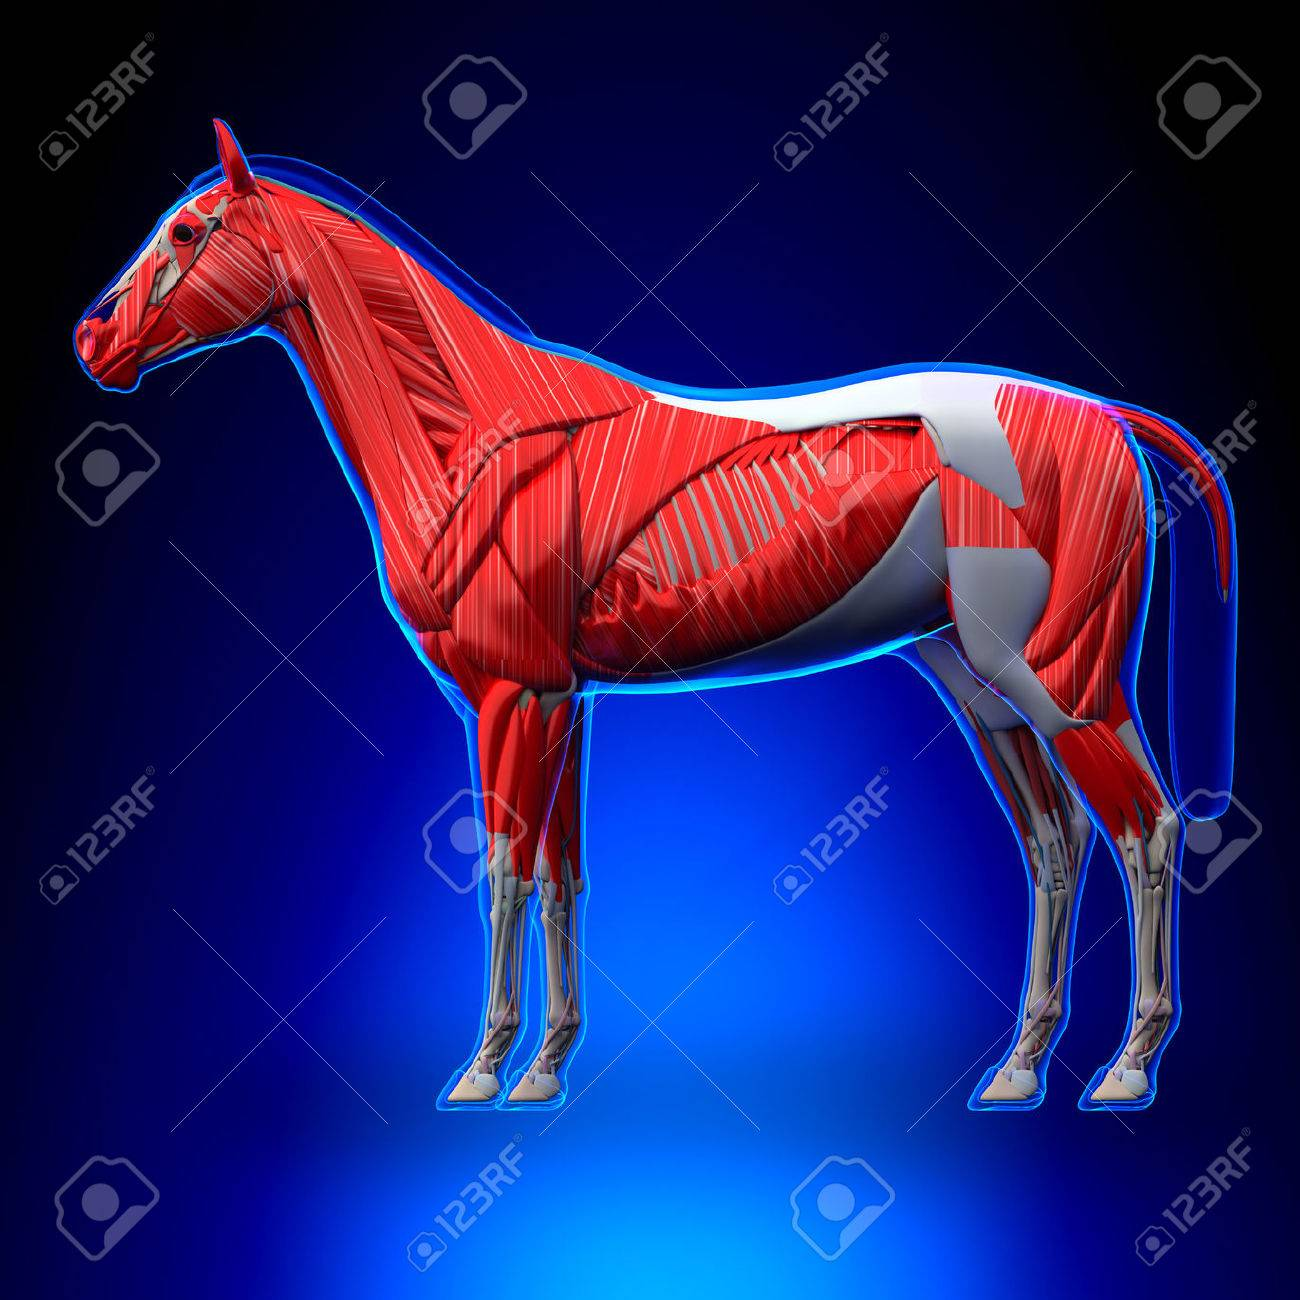 Horse Muscles - Horse Equus Anatomy - On Blue Background Stock Photo ...